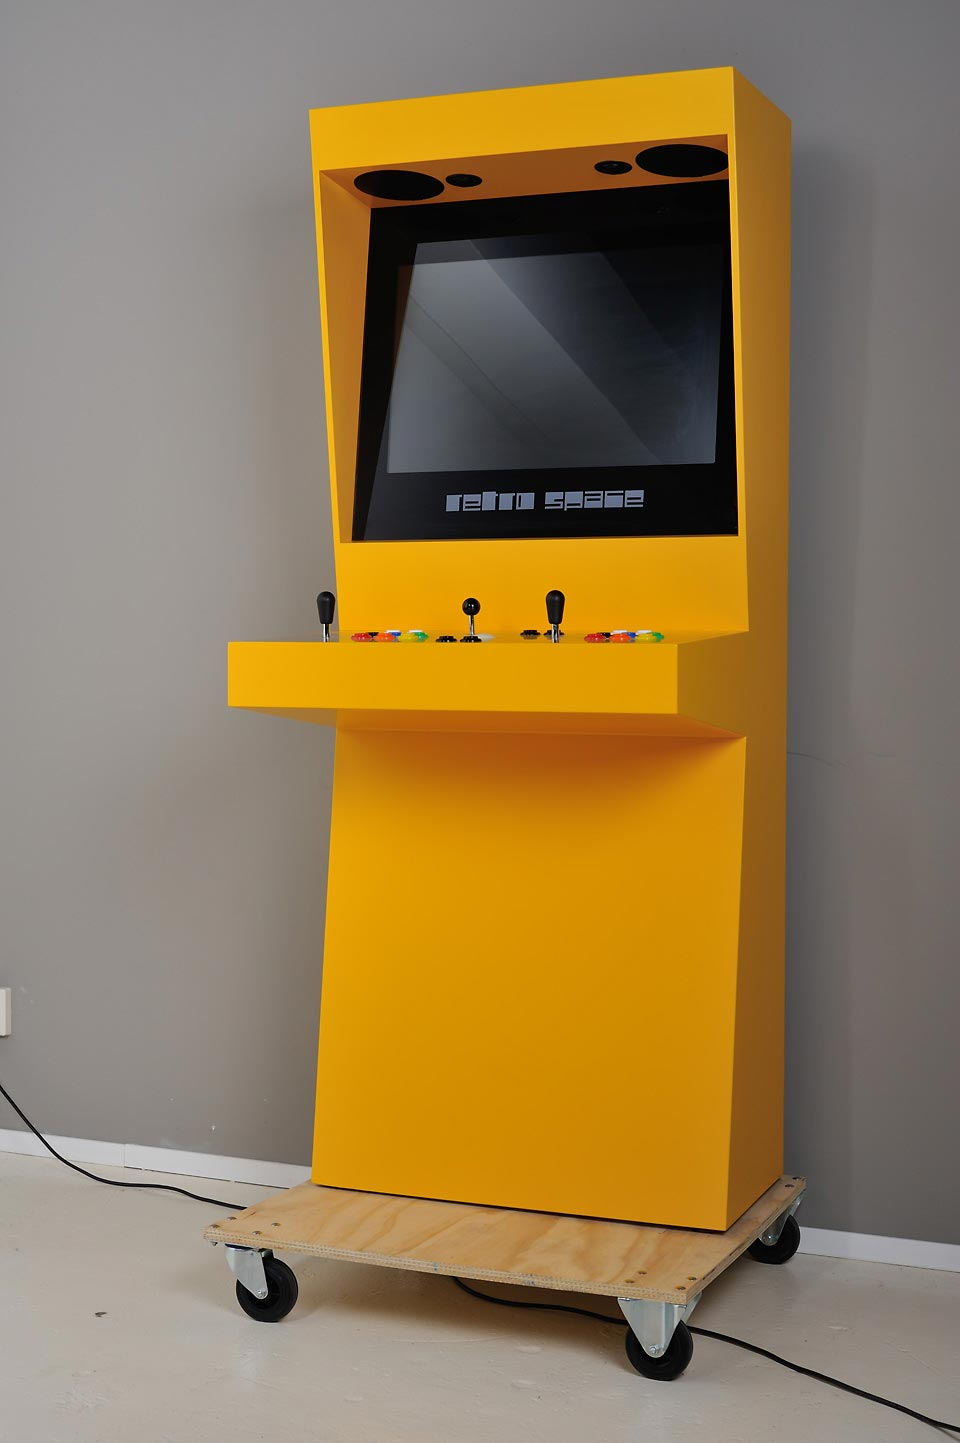 a3c5c0a1623b Retro Space - Modern Arcade Cabinets from the Netherlands